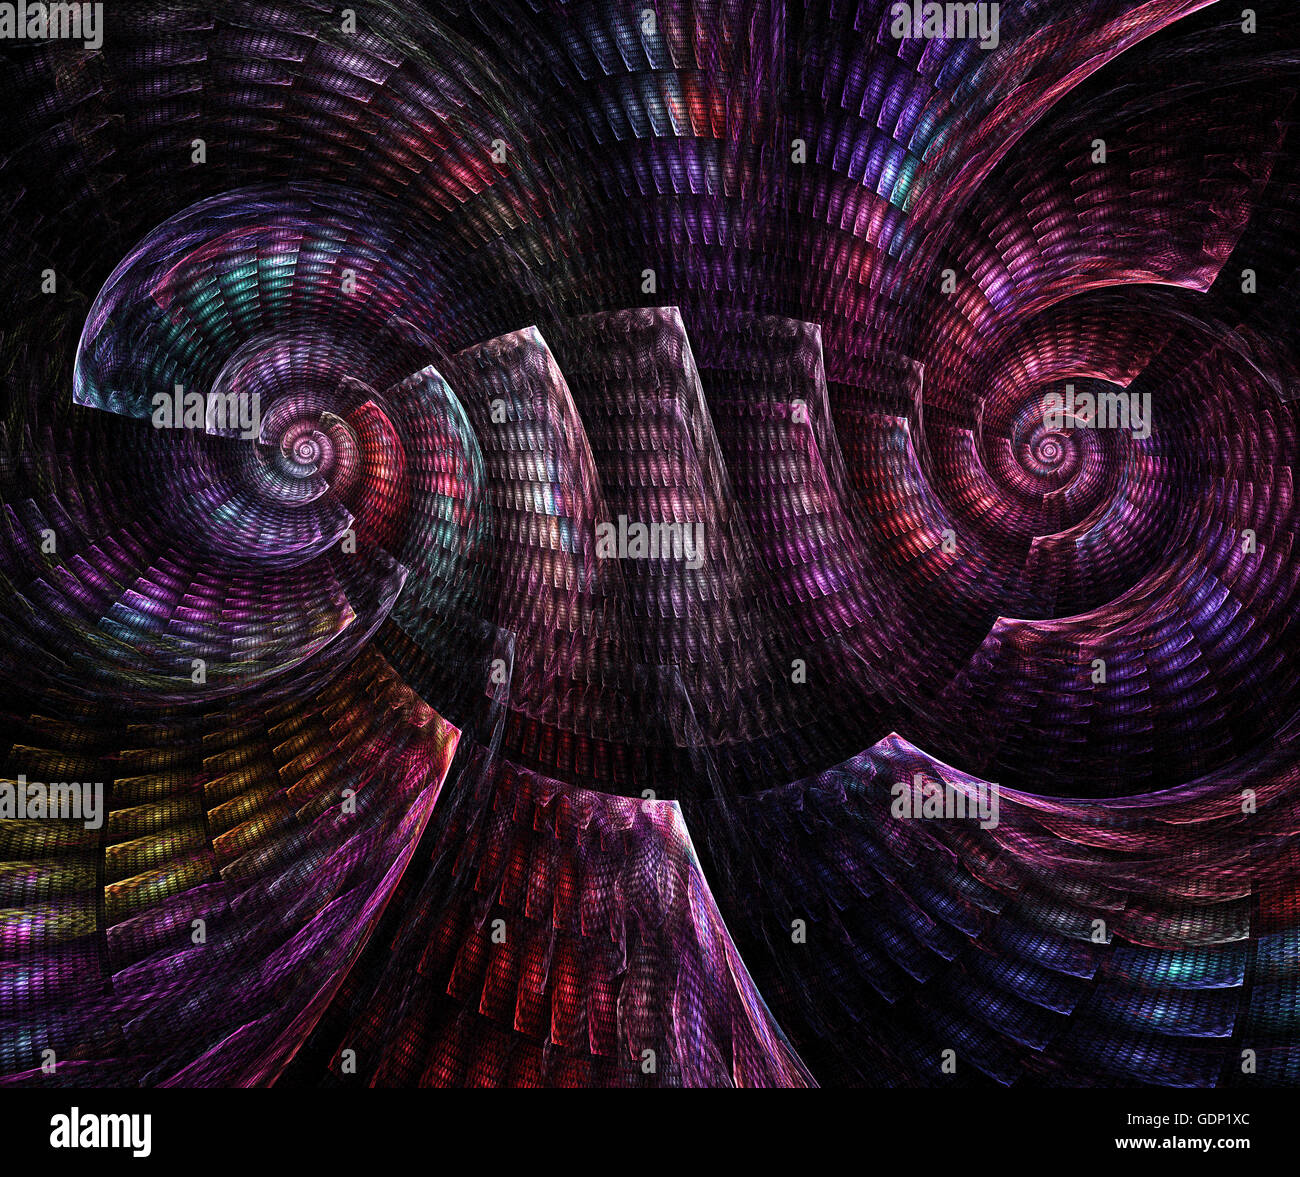 Abstract fractal fantasy magenta  spiral pattern of shell. Fractal artwork for creative design,flyer cover, interior, - Stock Image